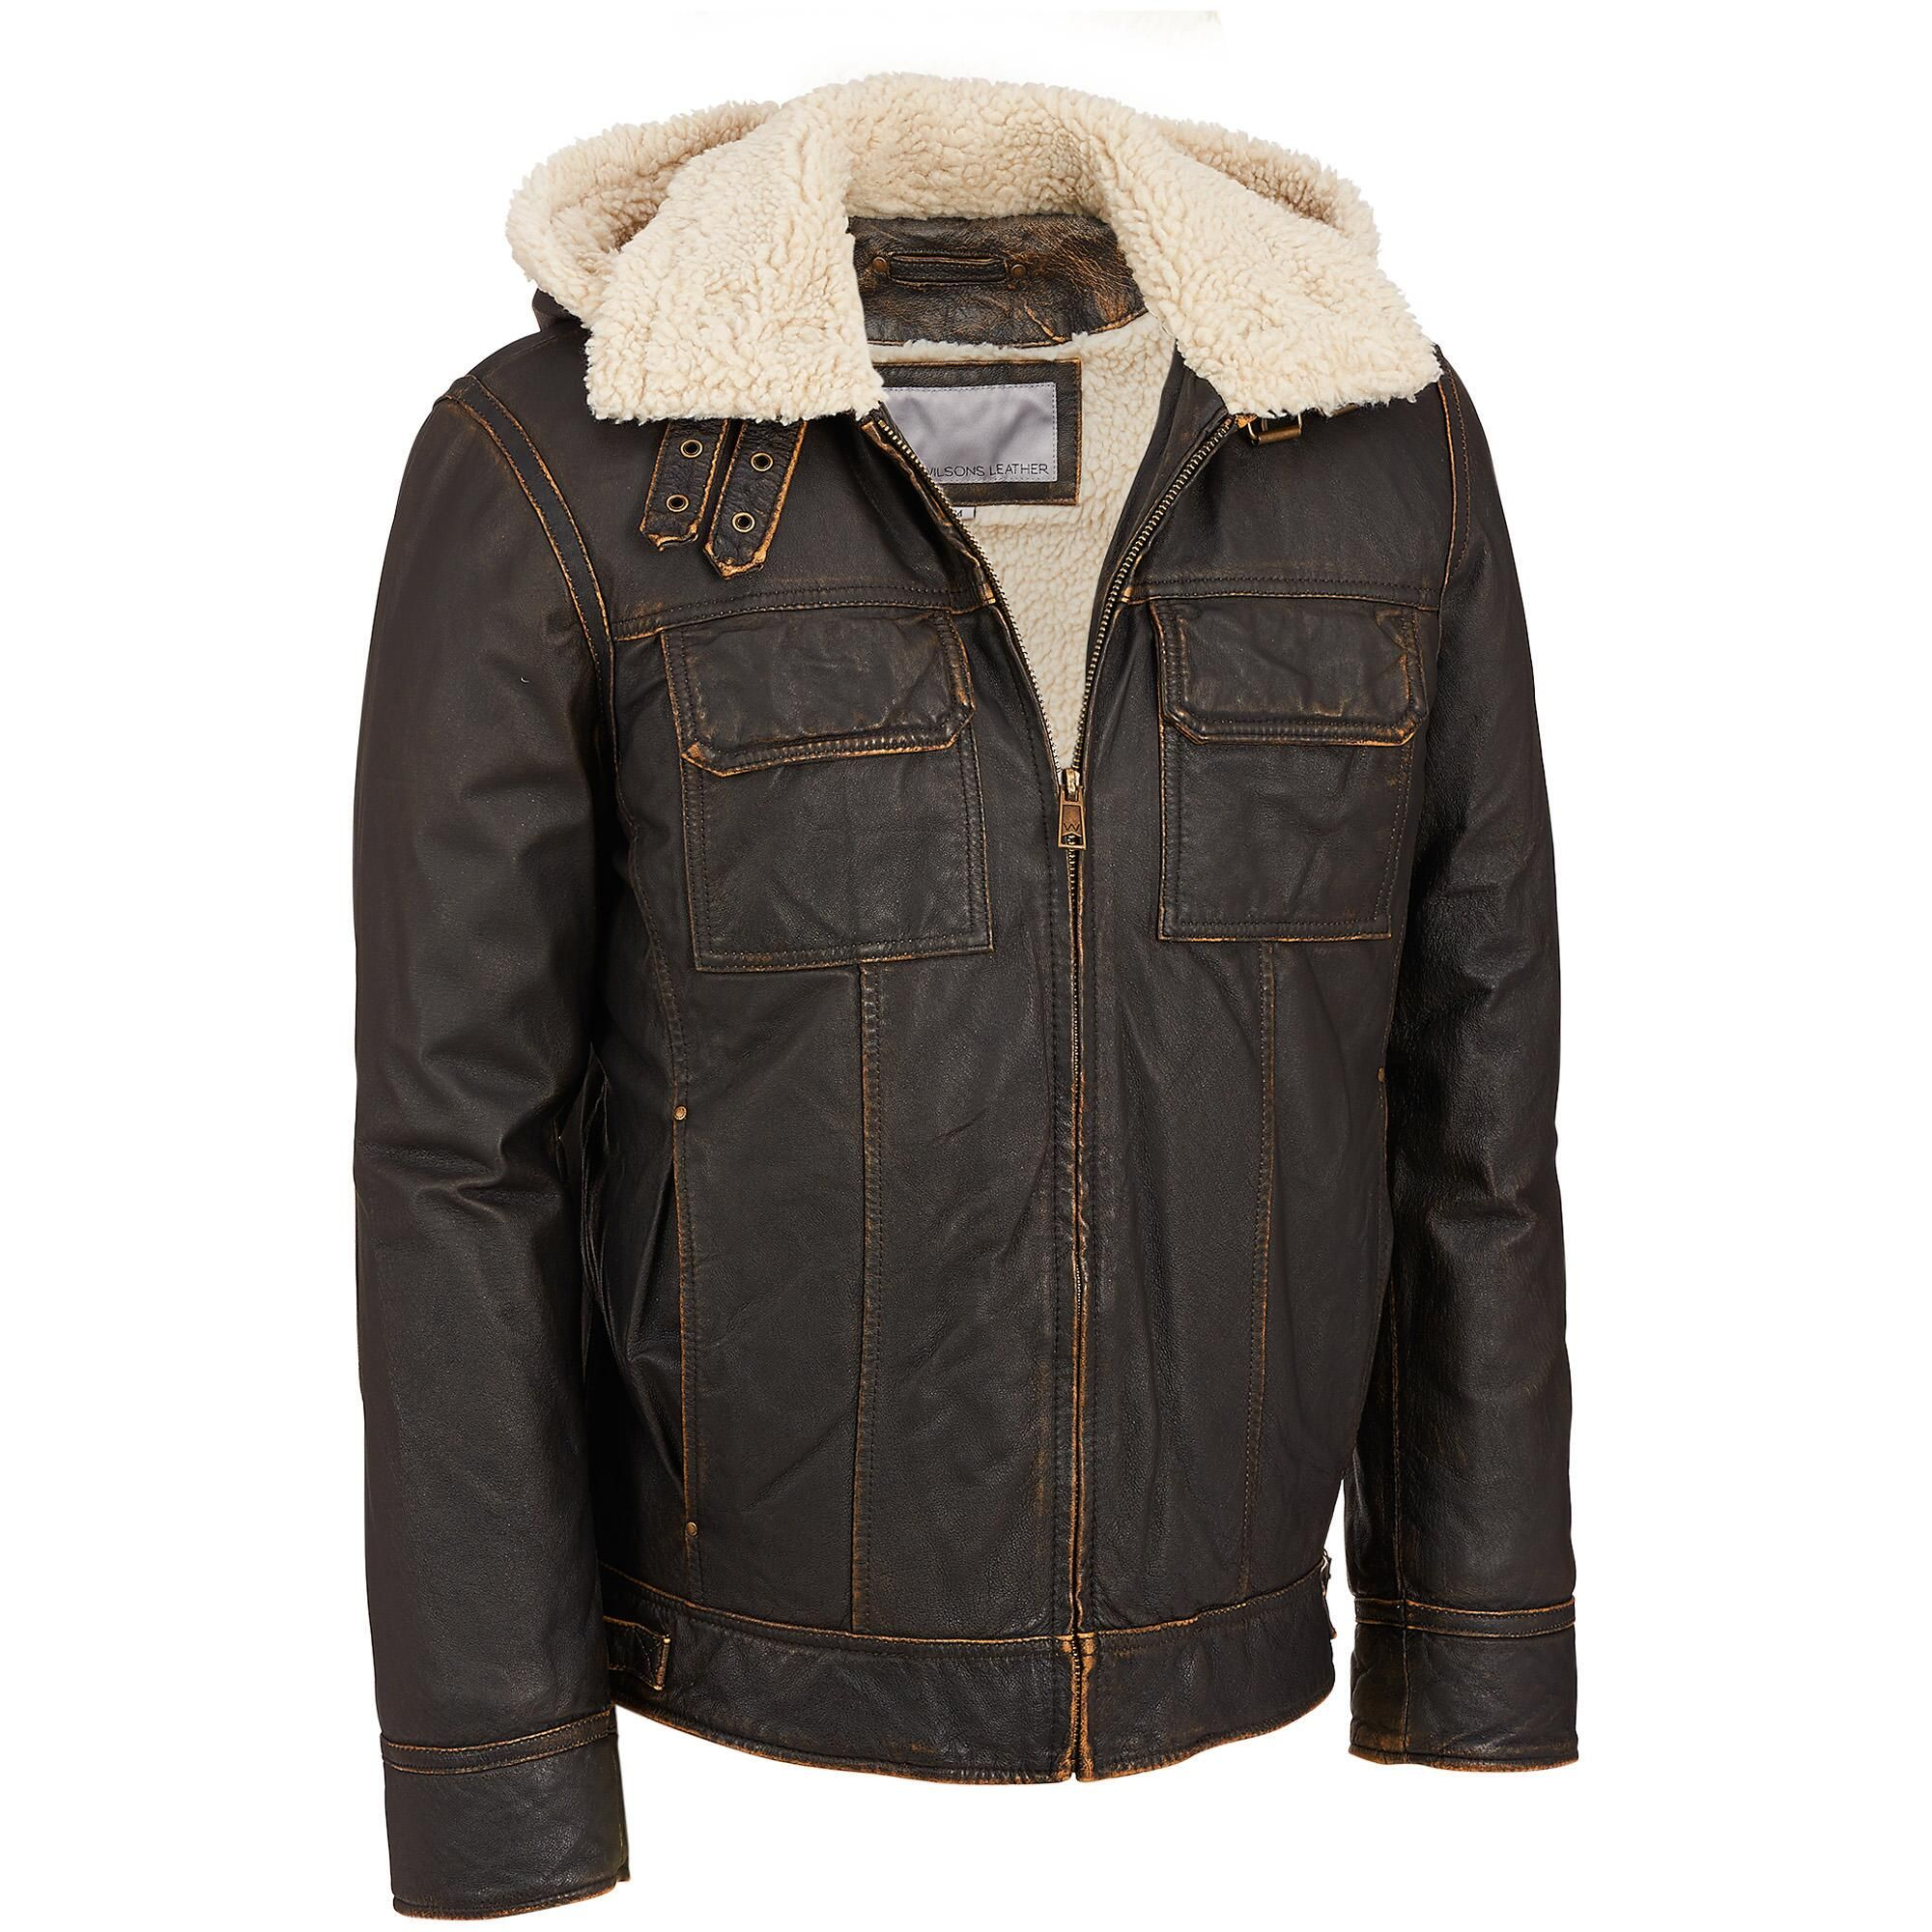 Faux Shearling Outerwear Mens Leather Bomber Jacket Bomber Jacket Vintage Leather Bomber Jacket [ 2000 x 2000 Pixel ]